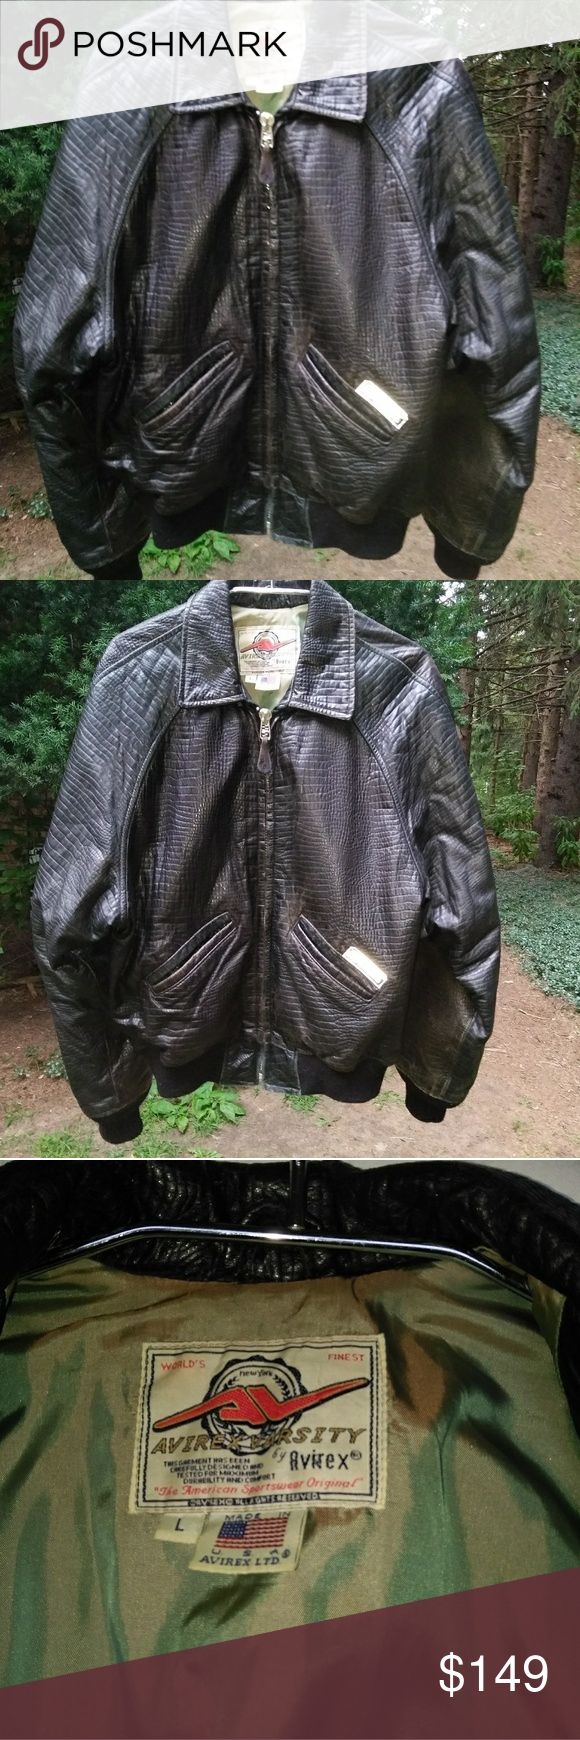 """Vintage AVIREX textured black leather jacket L Gorgeous jacket.  It is in excellent condition.  Has ribbed knit cuffs and waist.  Zipper works great.  Pretty shiny green lining. Two front slant pockets. It is marked a size large. The leather has a reptile or snake texture.  Measurements are ...46"""" chest,  40"""" waist across bottom of the leather,  21"""" underneath the sleeve to the end of sleeve, 35 1/2"""" from the center of the collar to the end of the sleeves, 25"""" length from the top of the…"""